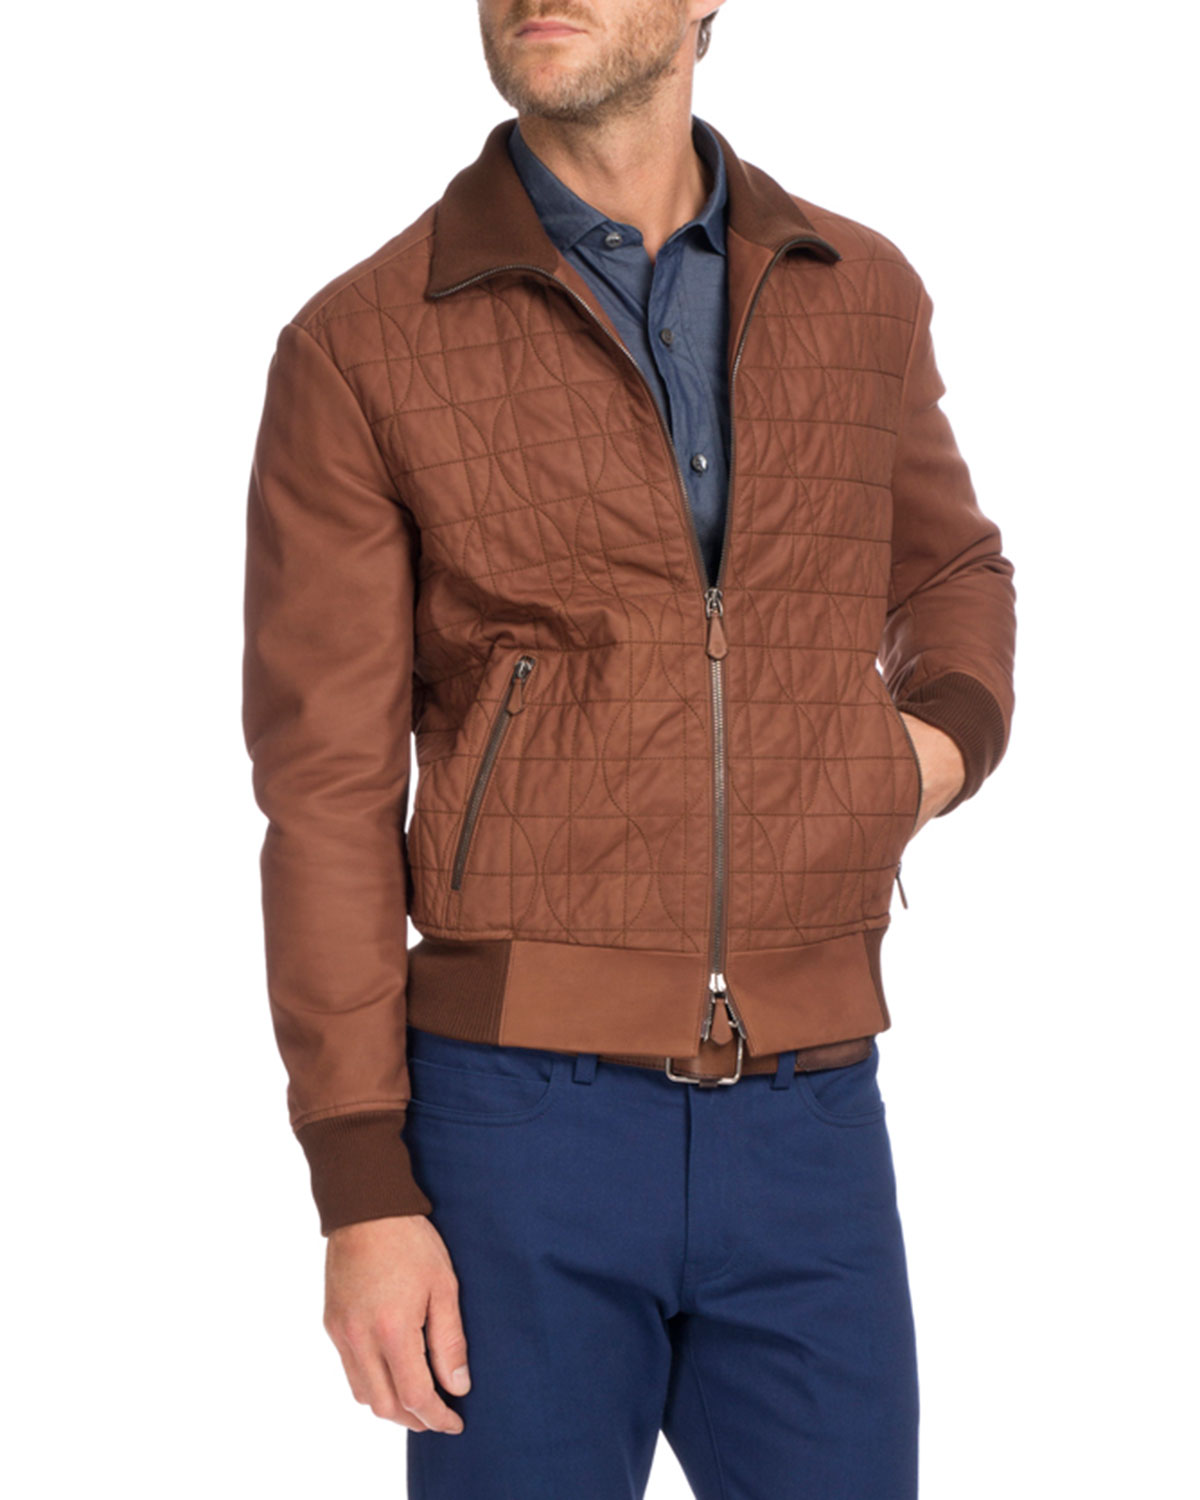 695b7e26d46 Berluti Quilted Leather Bomber Jacket, Brown | Neiman Marcus